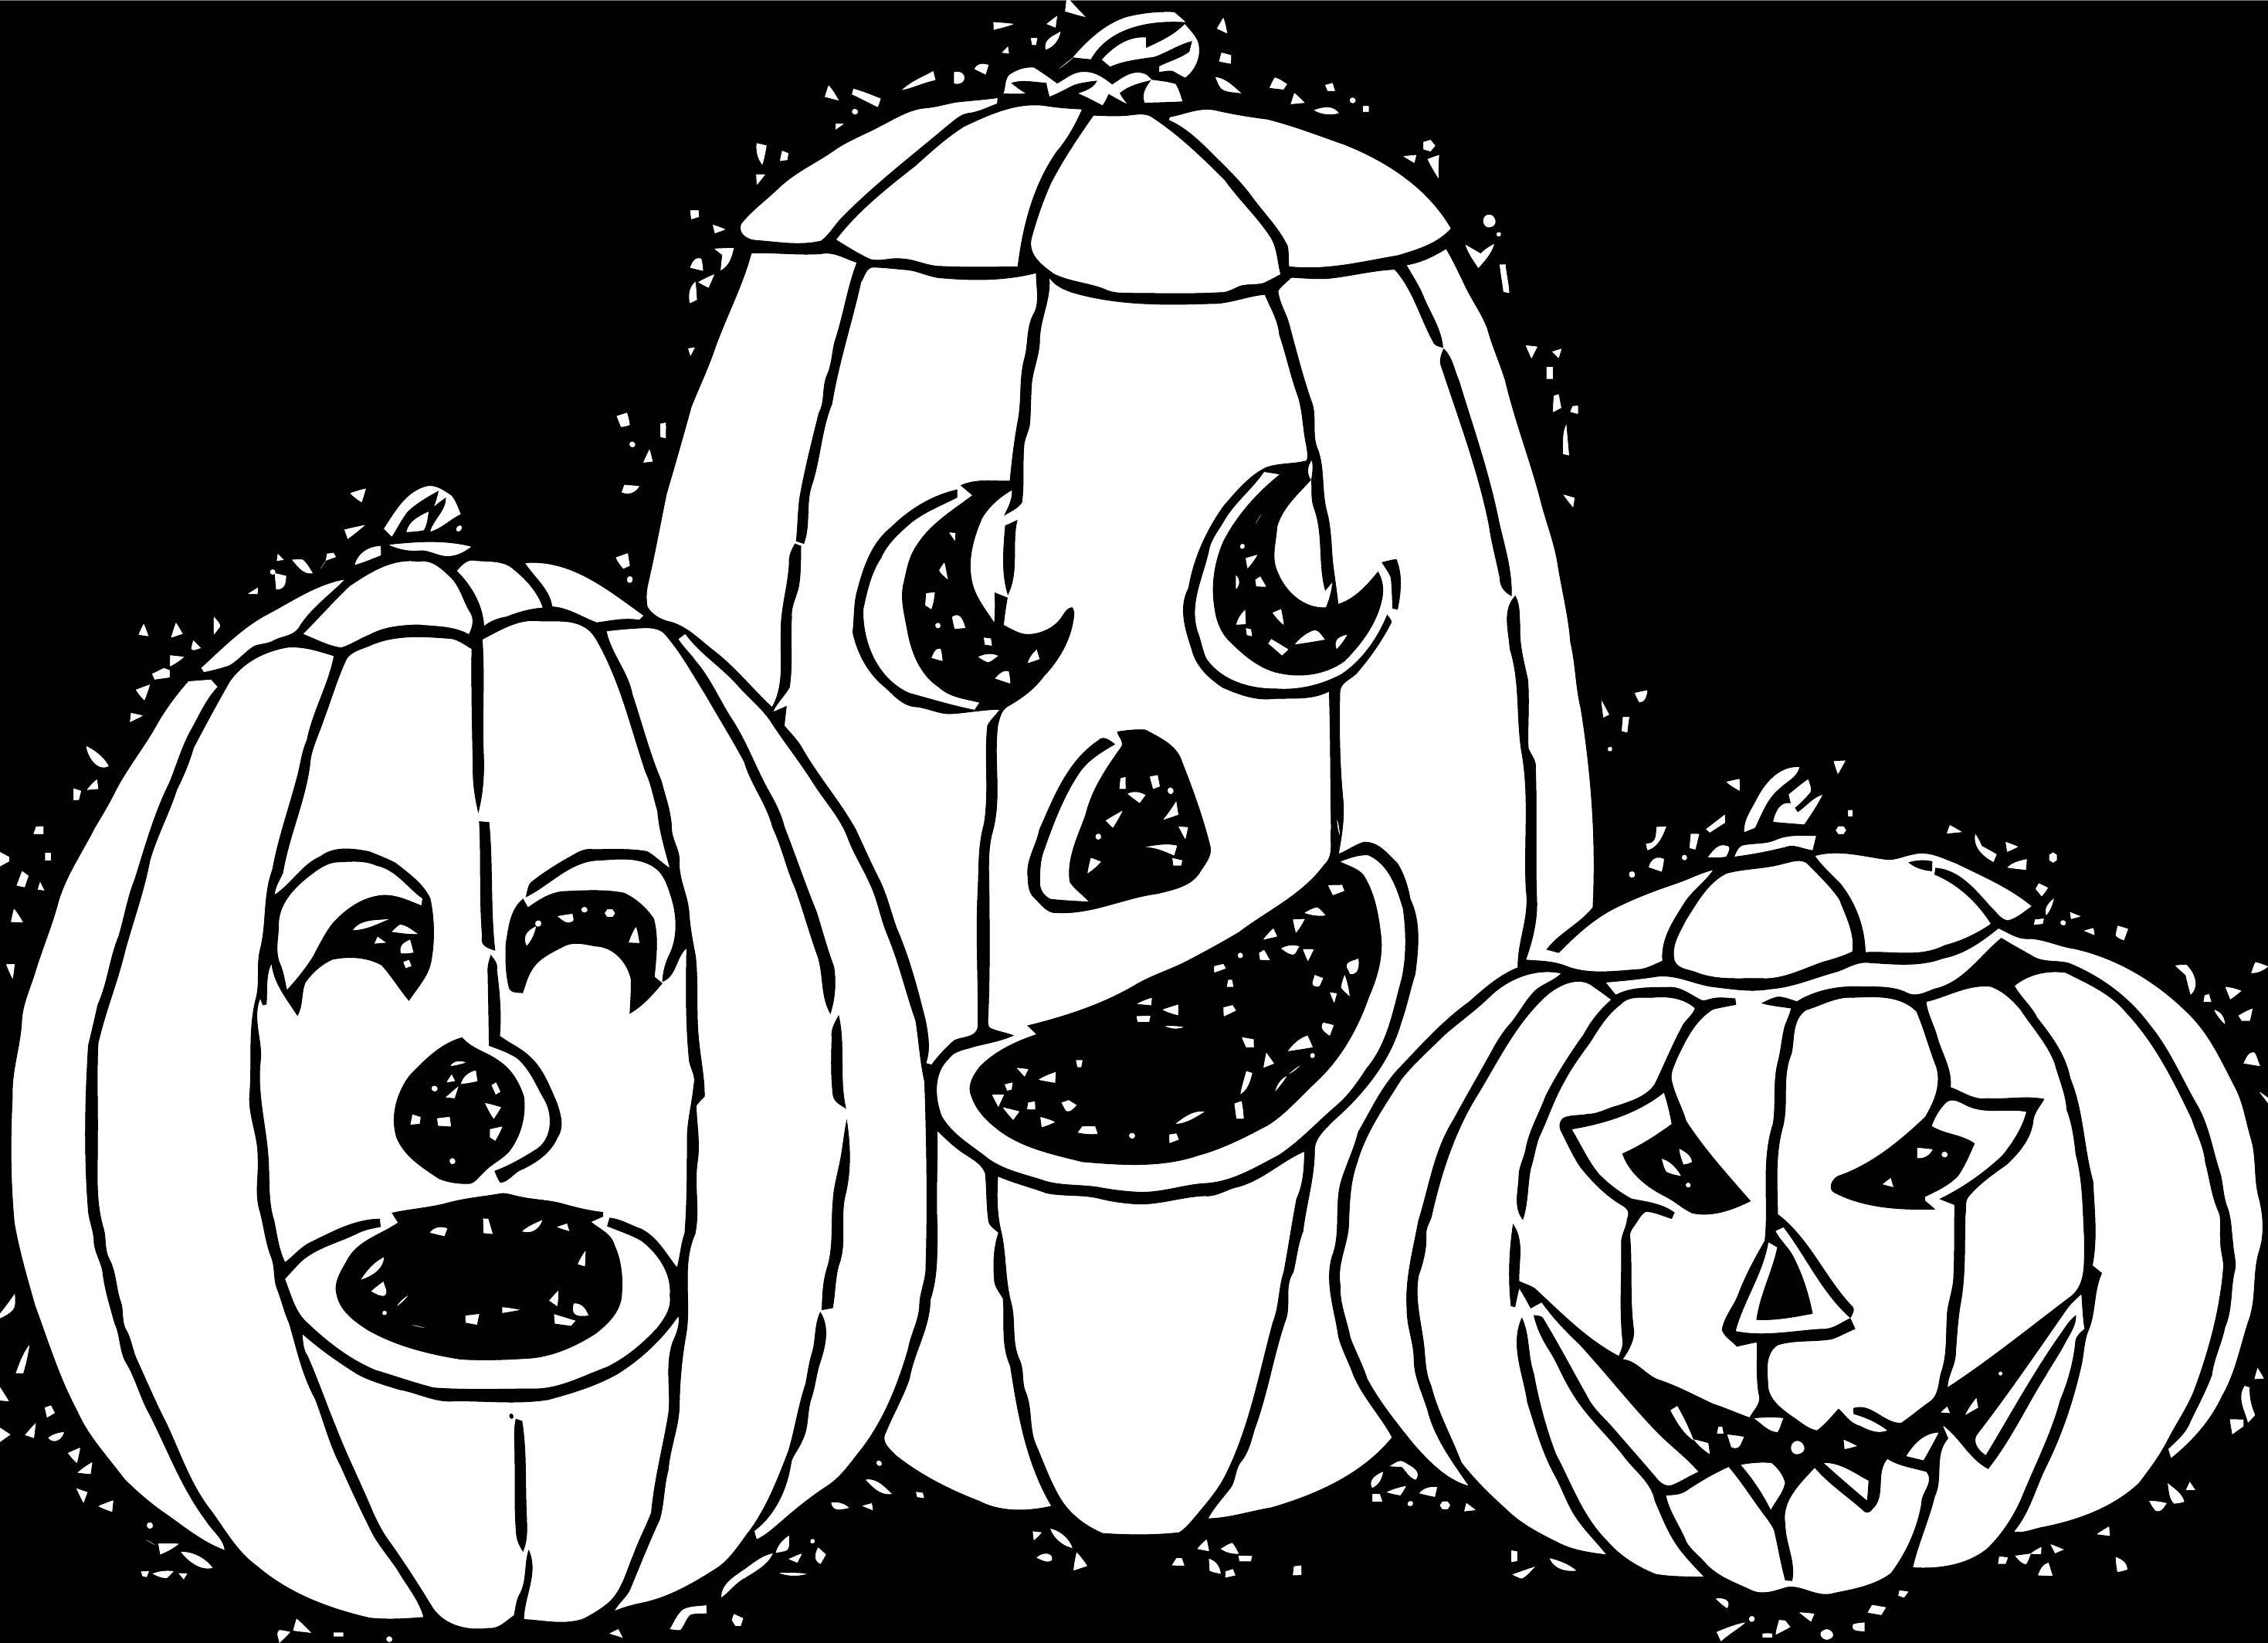 Halloween Pumpkin Black Background Coloring Page